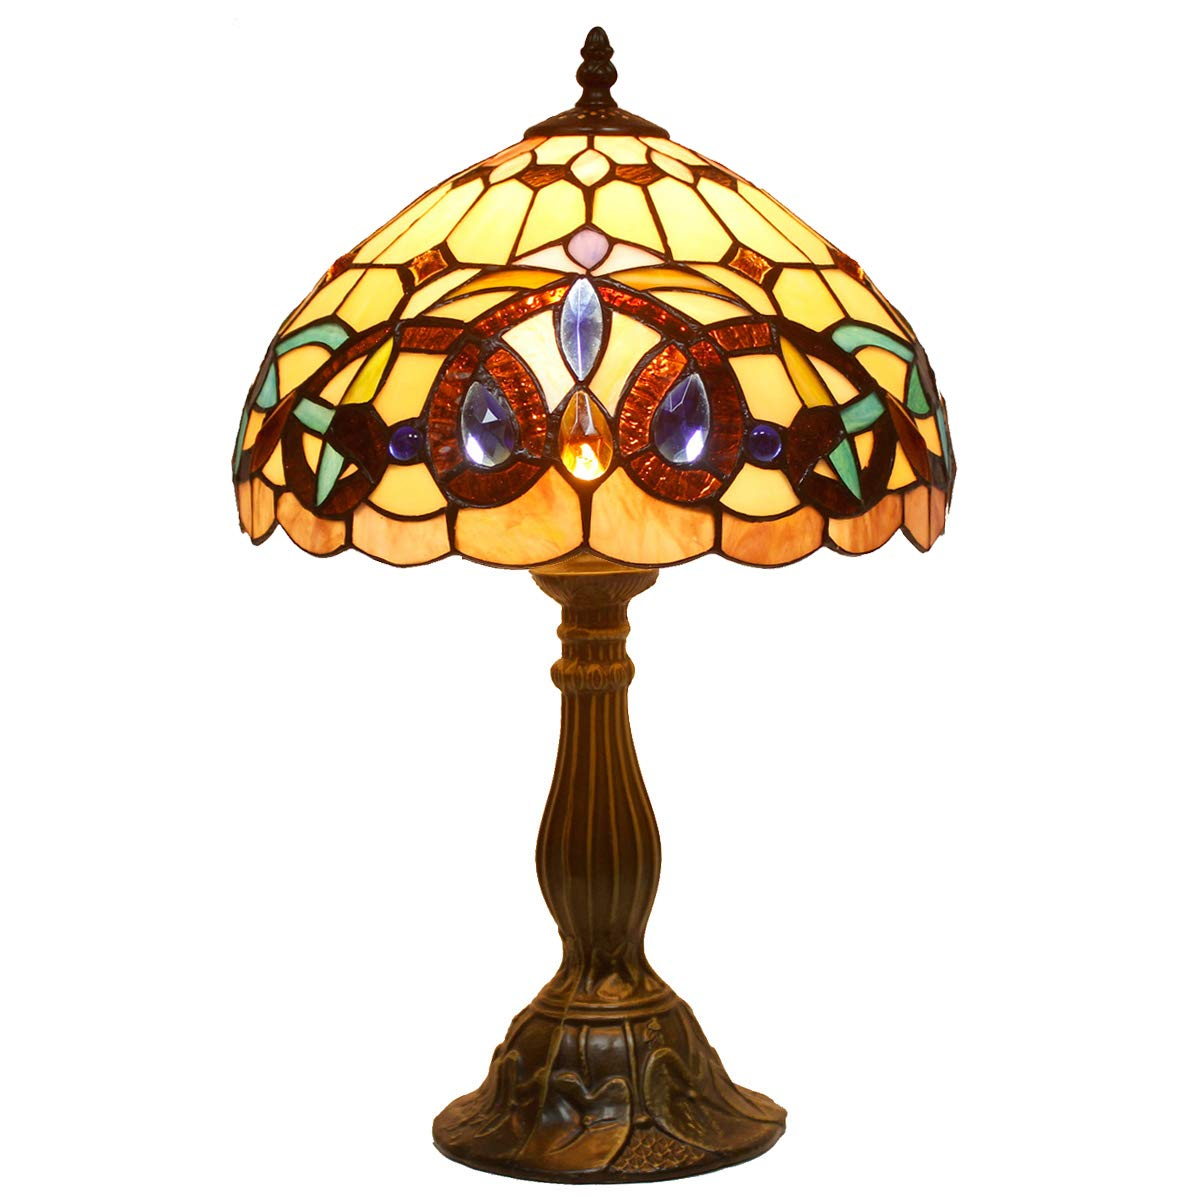 Tiffany Style Table Lamps Wide 12 Height 18 inch Serenity Victorian Stained Glass Lamp Shade 1 Bulb Desk Antique Light Zinc Base for Living Room Bedroom Bedside S021 WERFACTORY